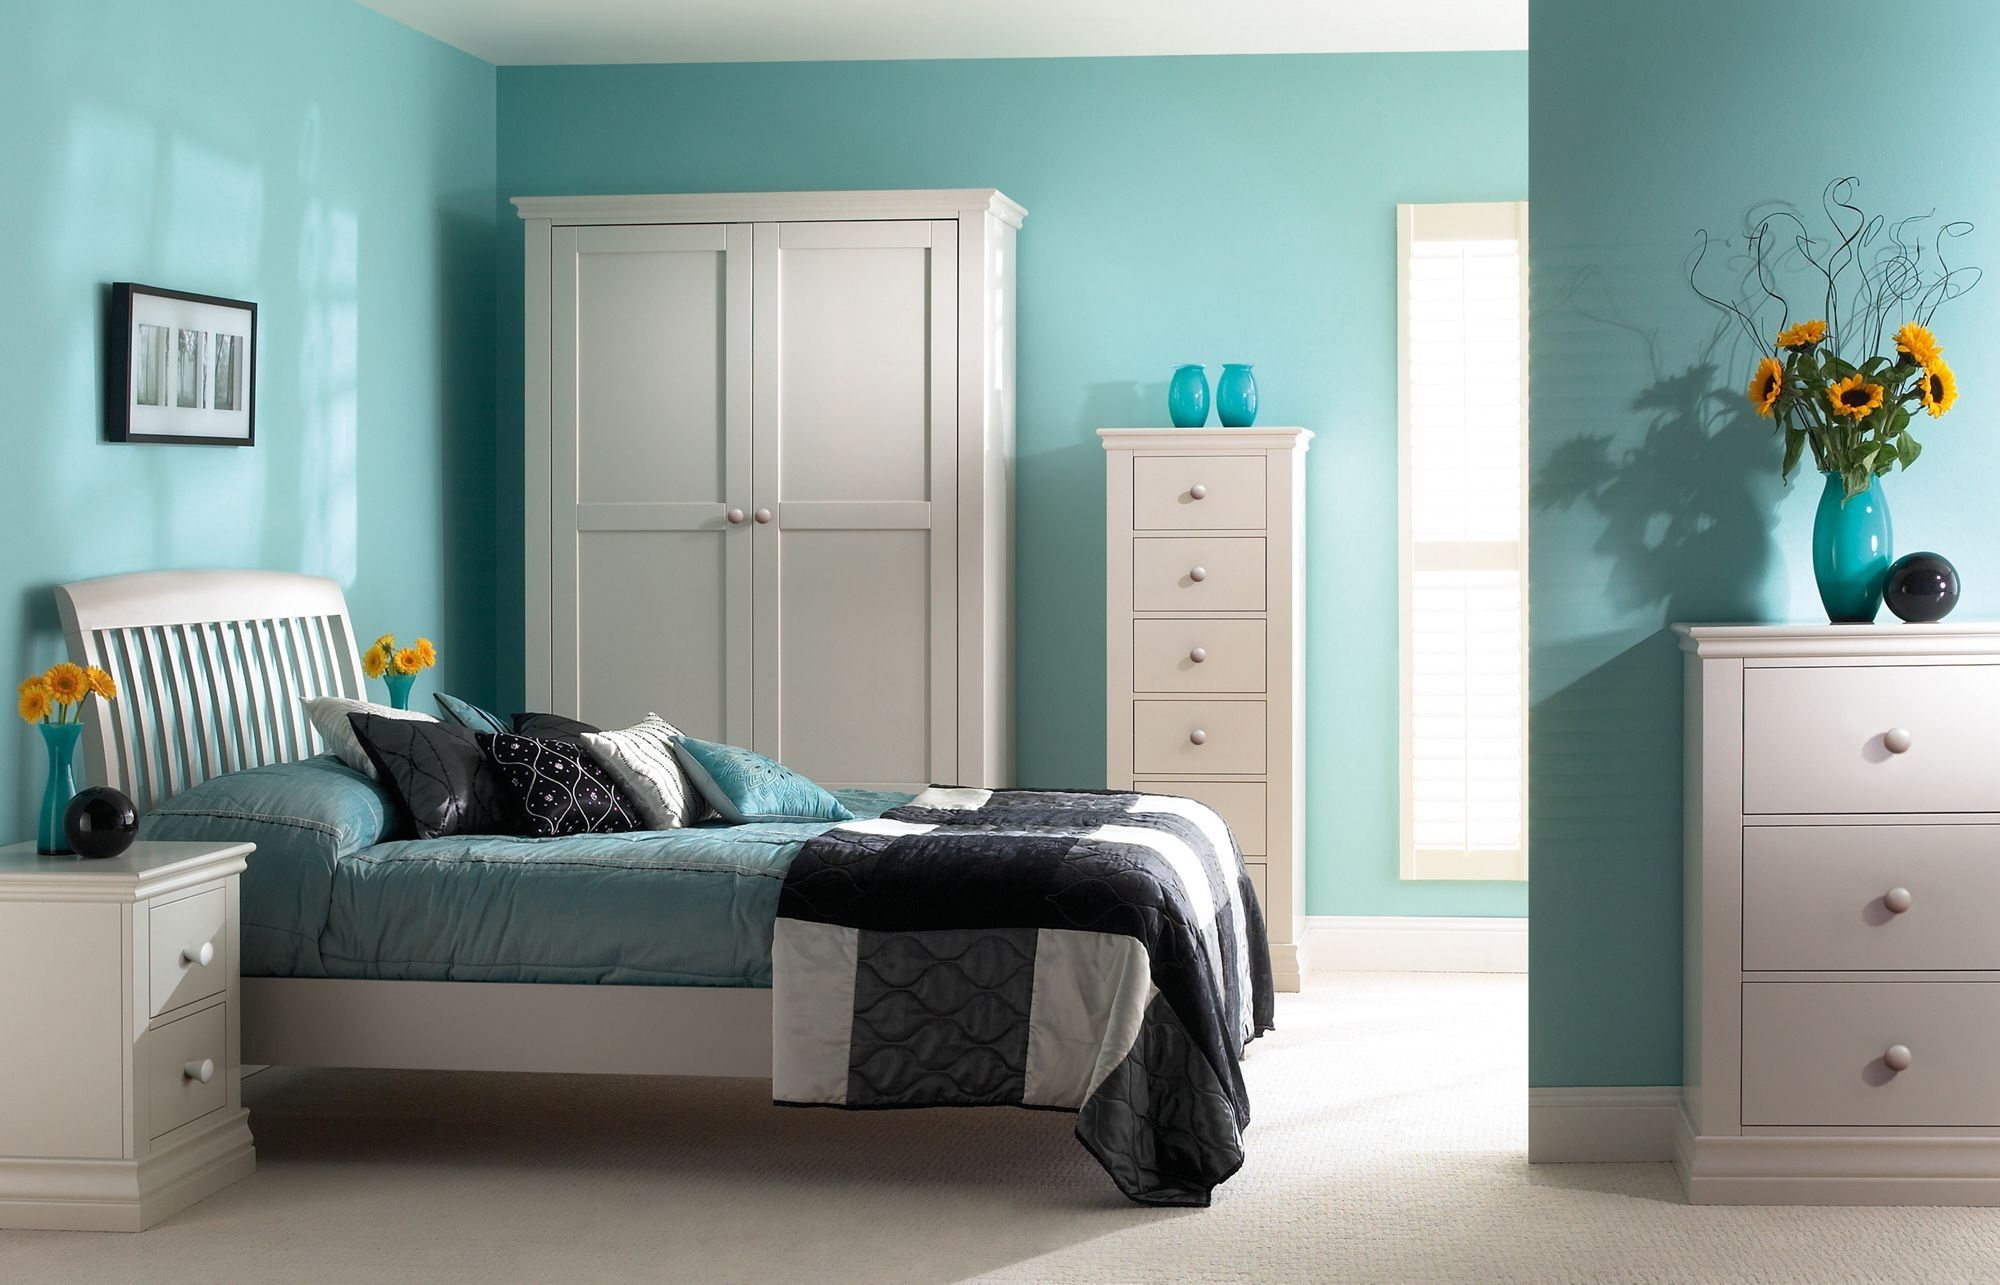 The Color Of The Sea Wave In The Interior 75 Photos Of Design Ideas